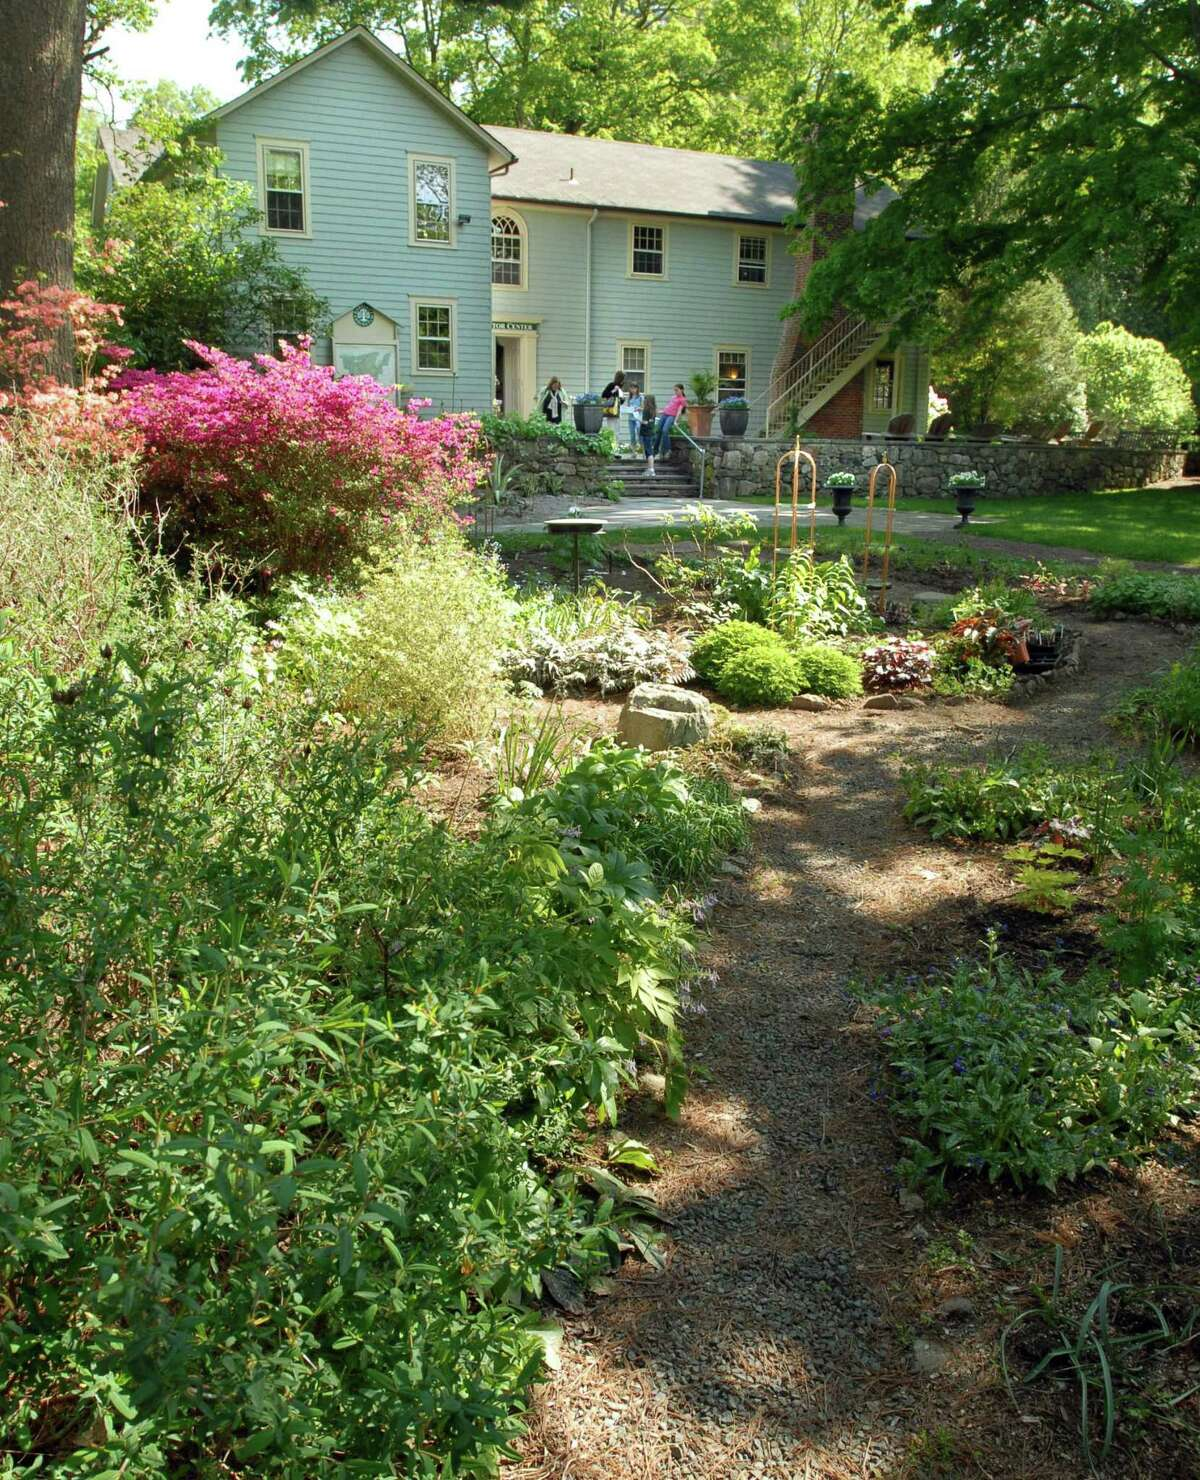 The cottage garden in front of the visitor center at Bartlett Arboretum and Gardens is full of blooming flowers.